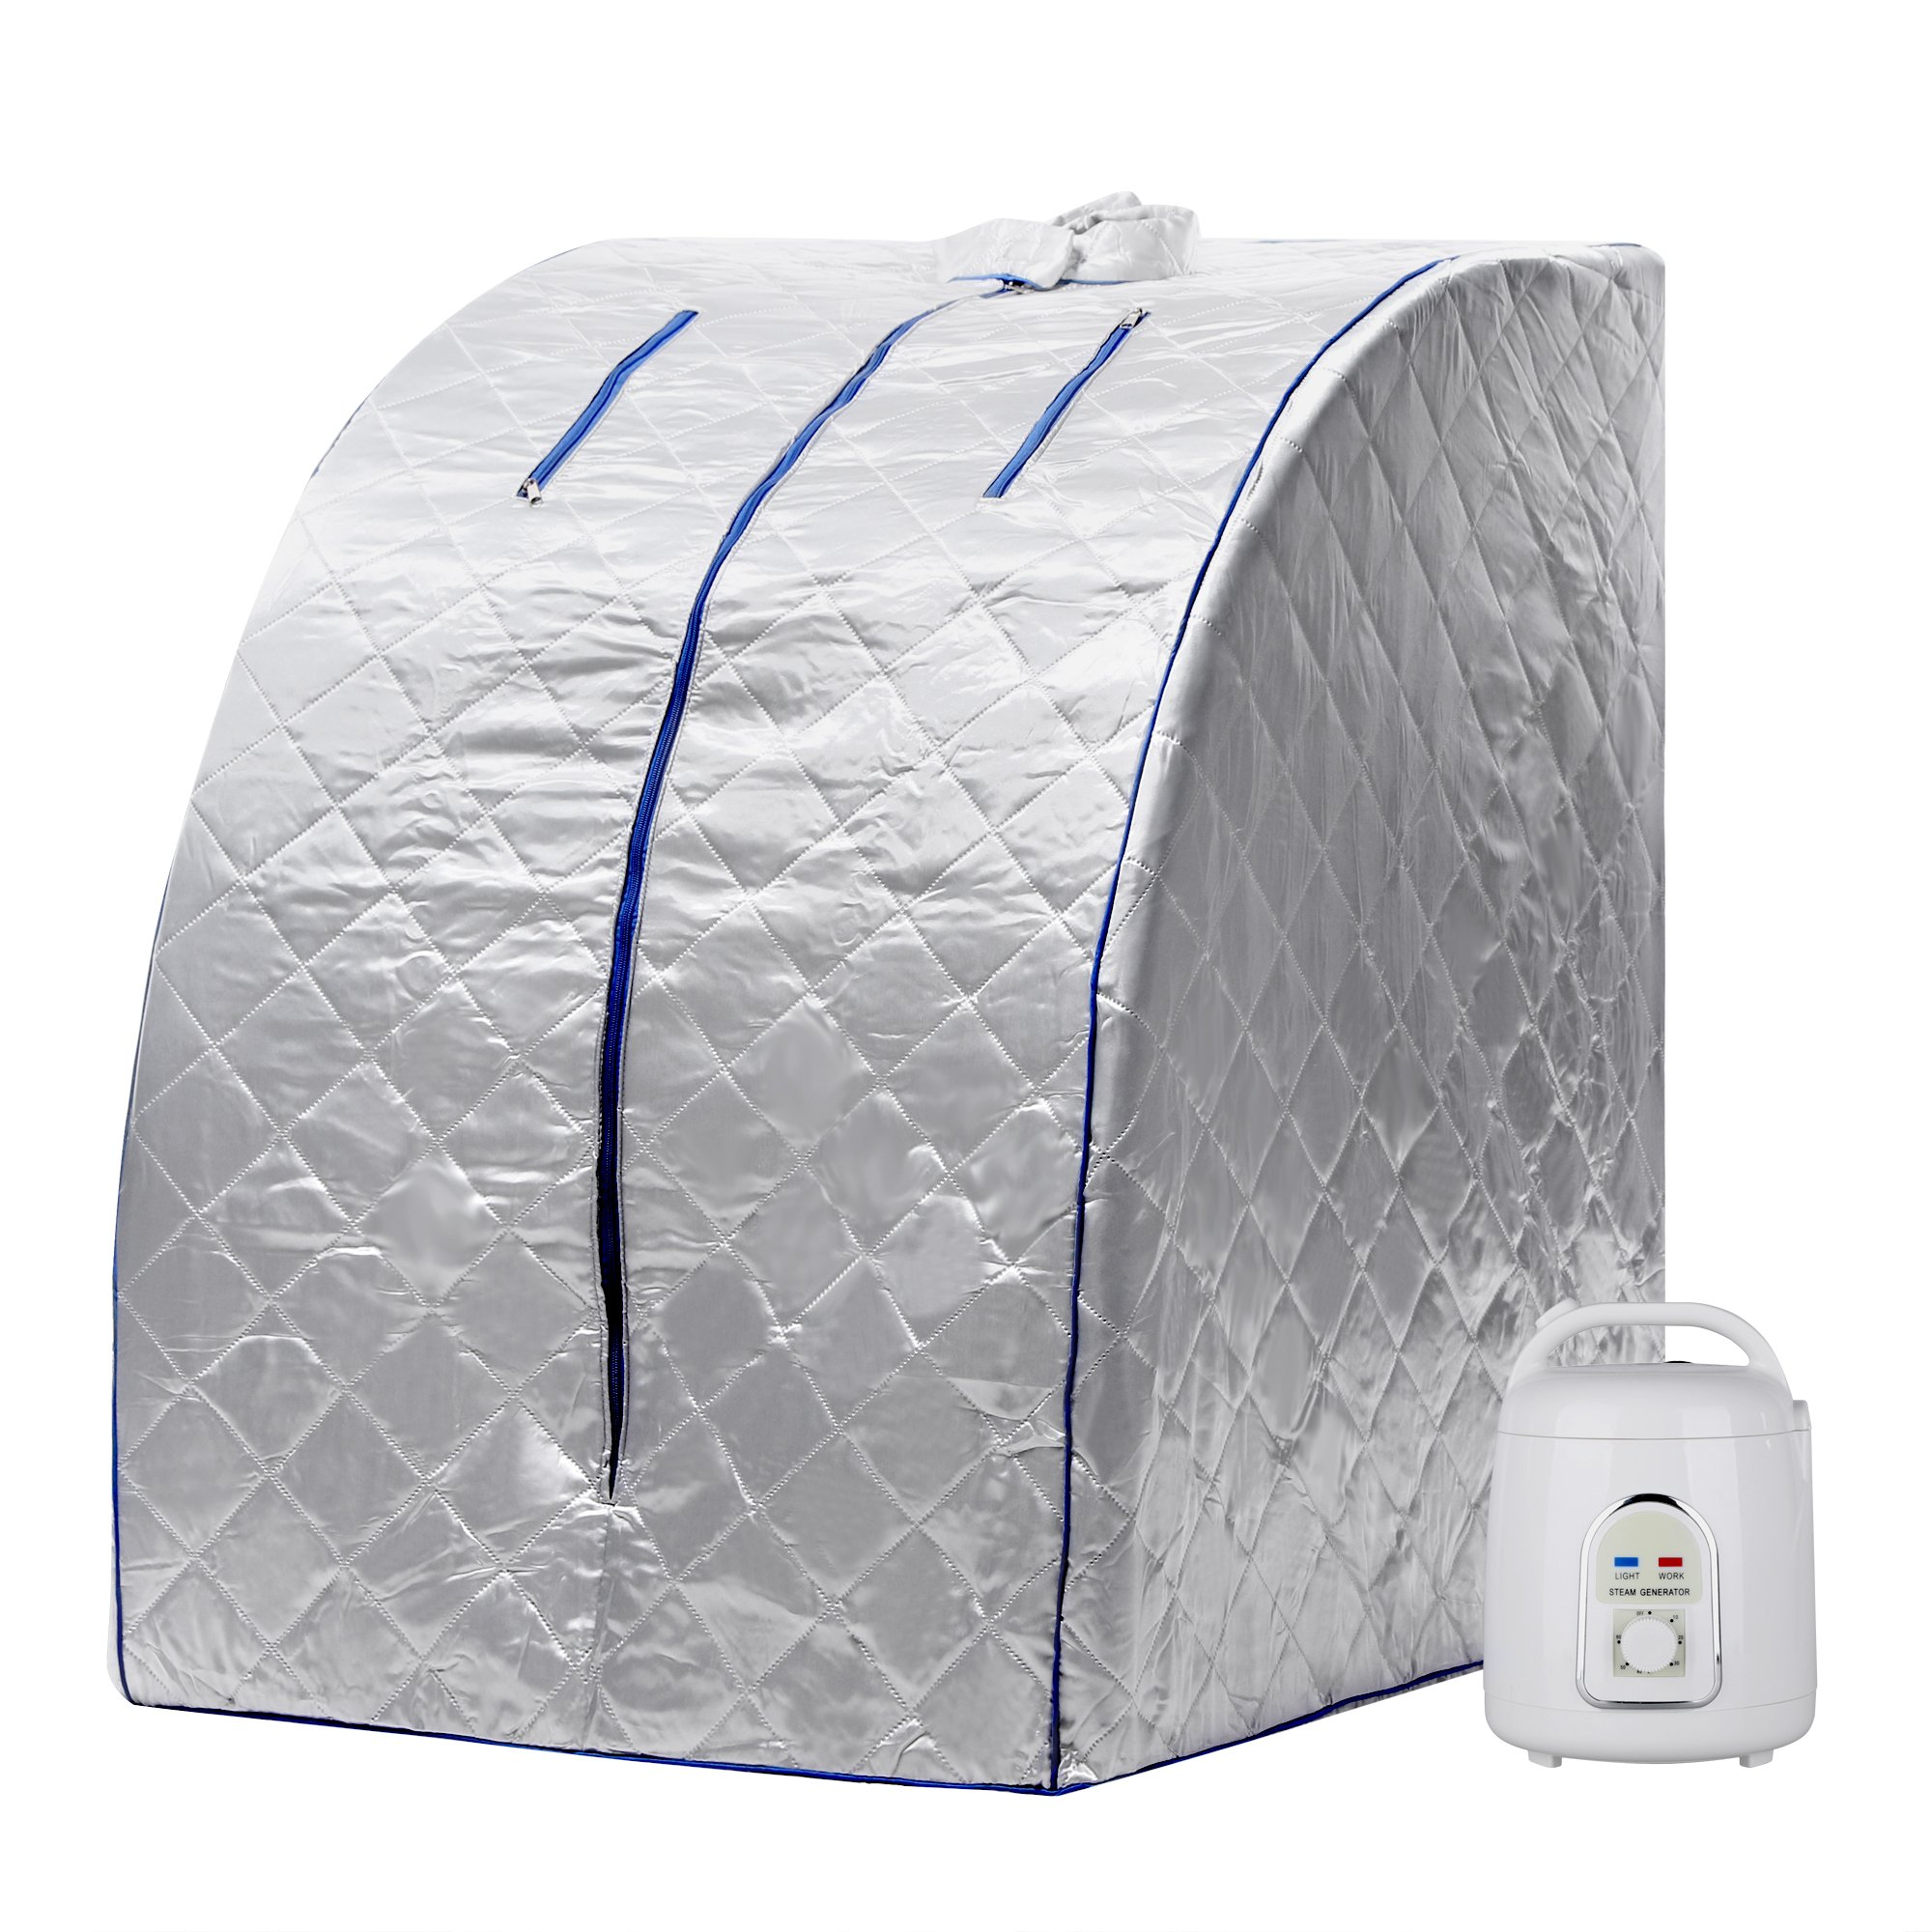 Flyerstoy Home Portable Sauna Indoor Steam Sauna Room for Detox and Weight Loss 850W (US STOCK) by Flyerstoy